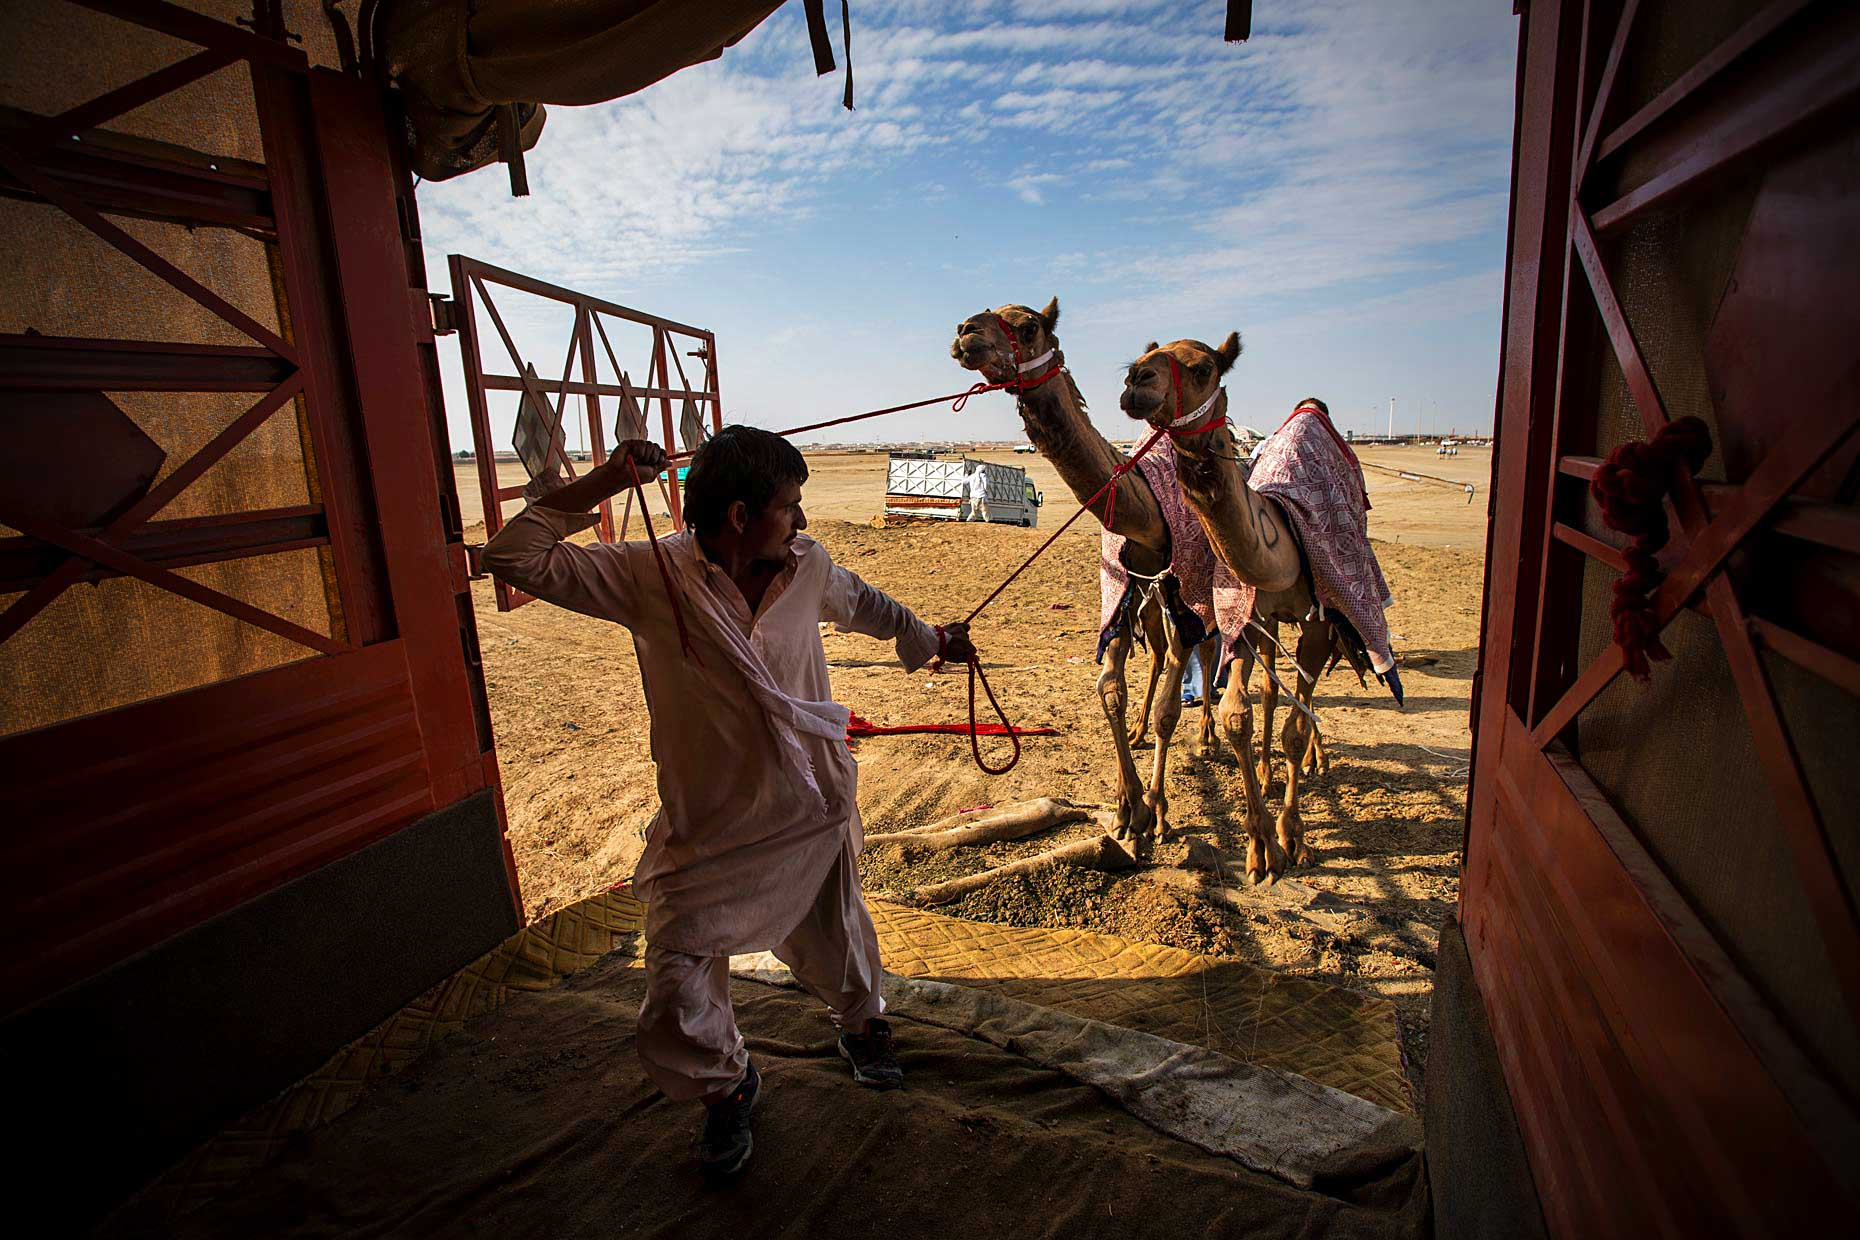 Wouter-Kingma-Web-Camel-Library-12